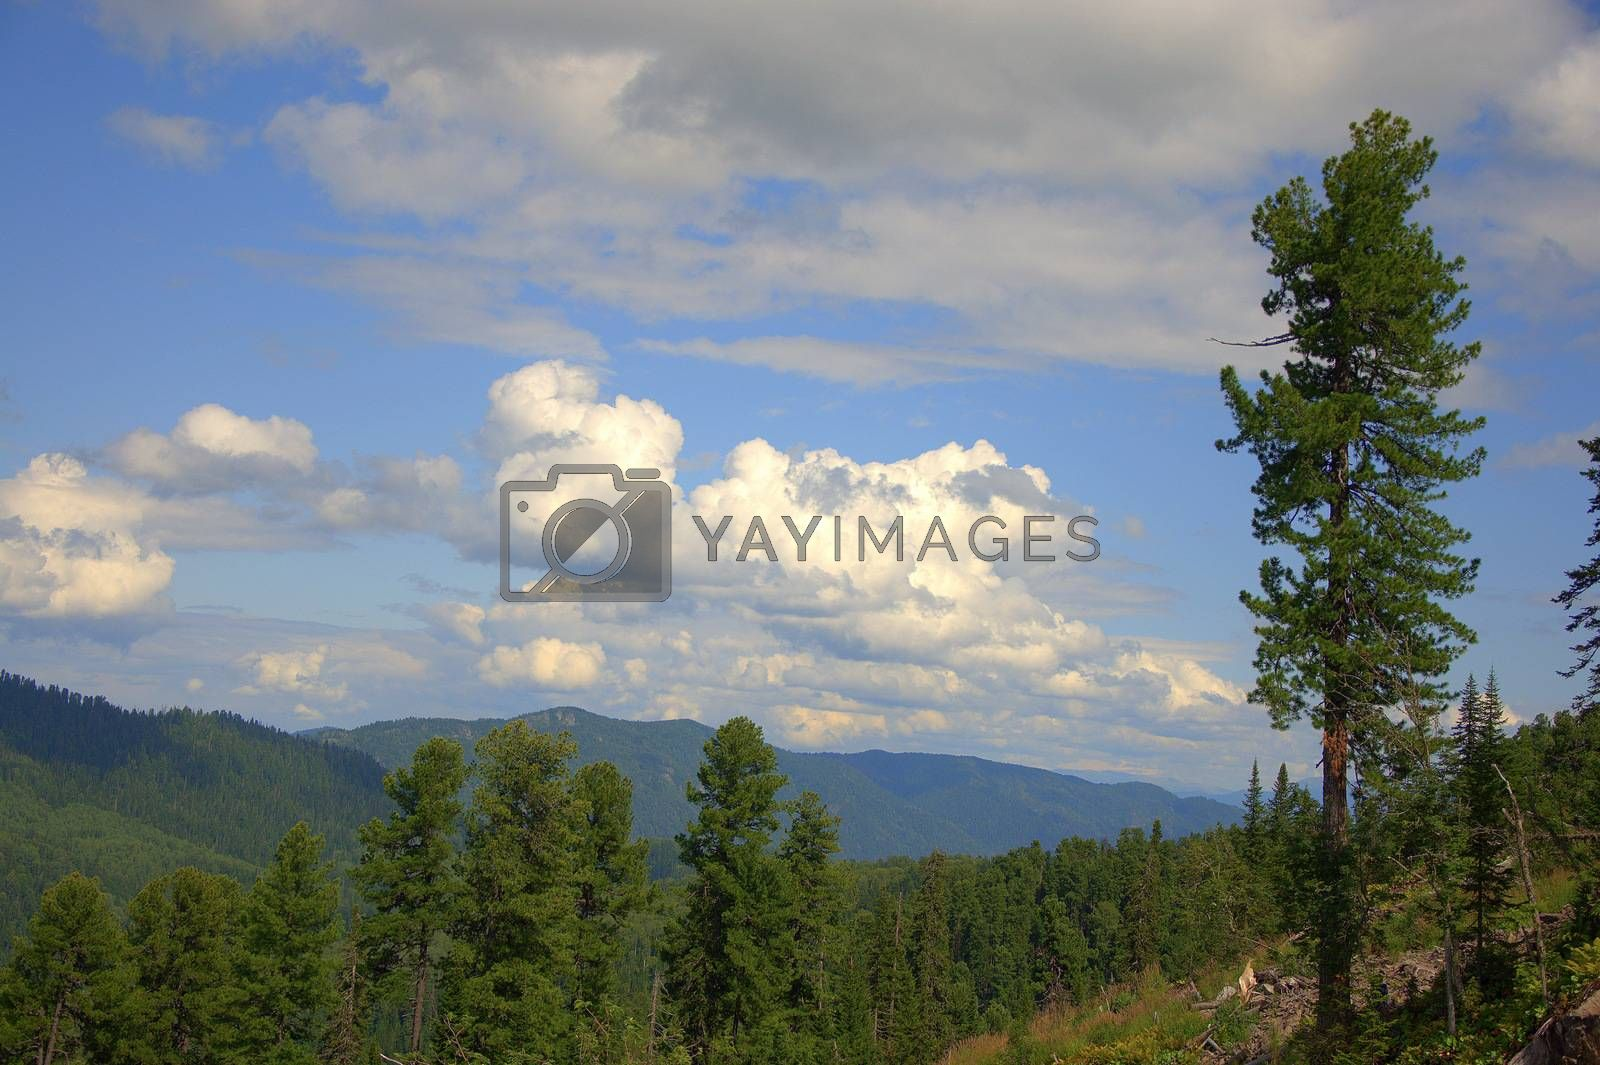 A look at the tops of the mountains through the tops of the pines. Pritsel Taiga, Altai, Russia.